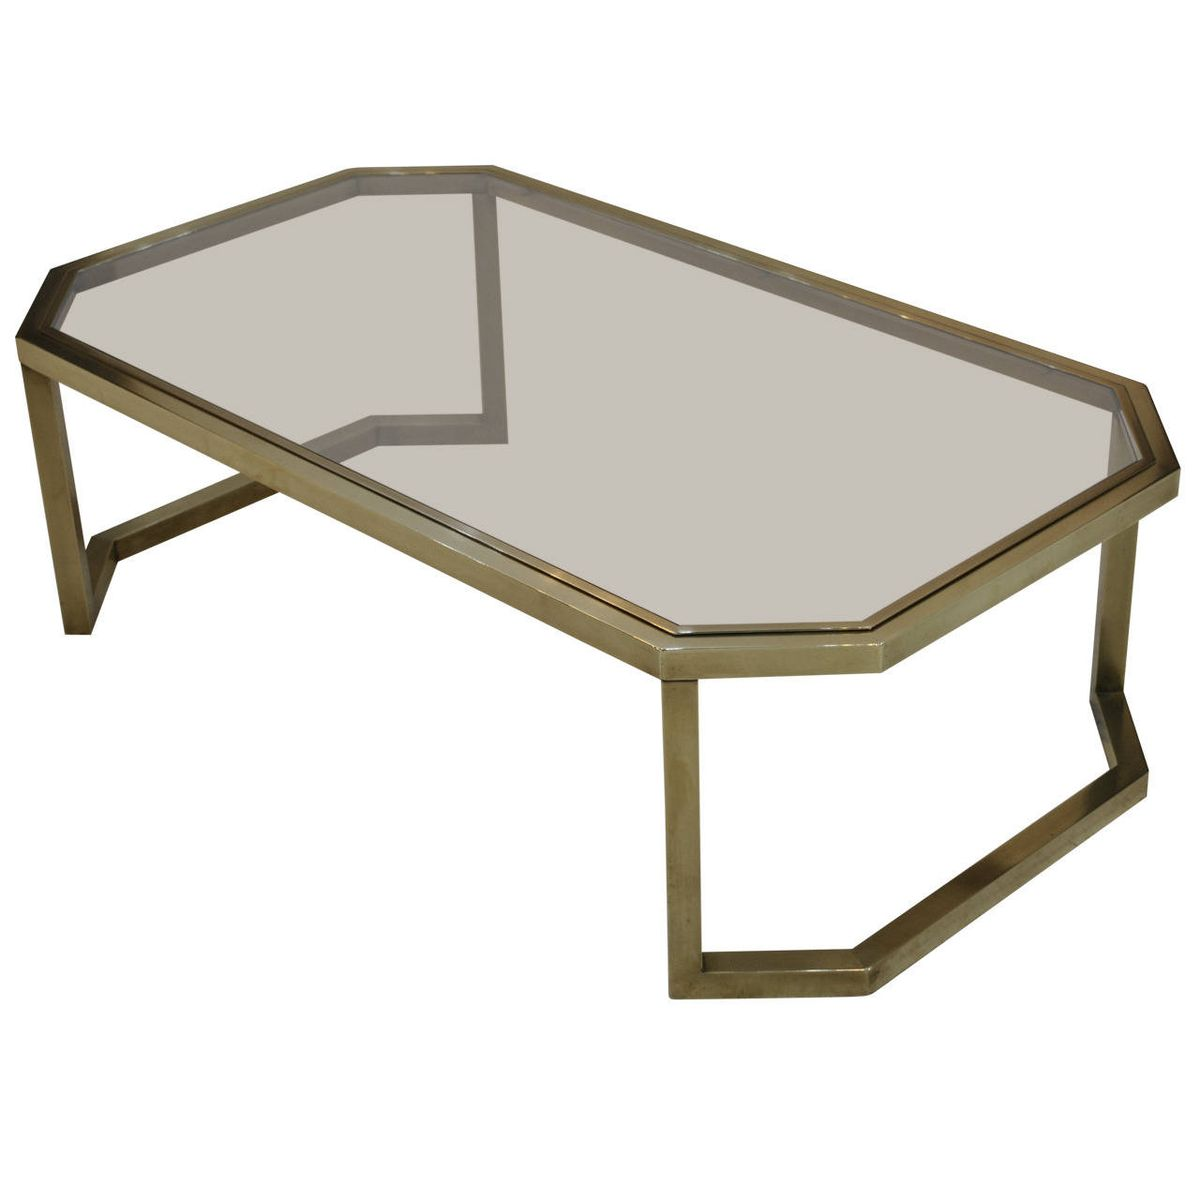 Modernist Brass Coffee Table By Maison Jansen 1970s For Sale At